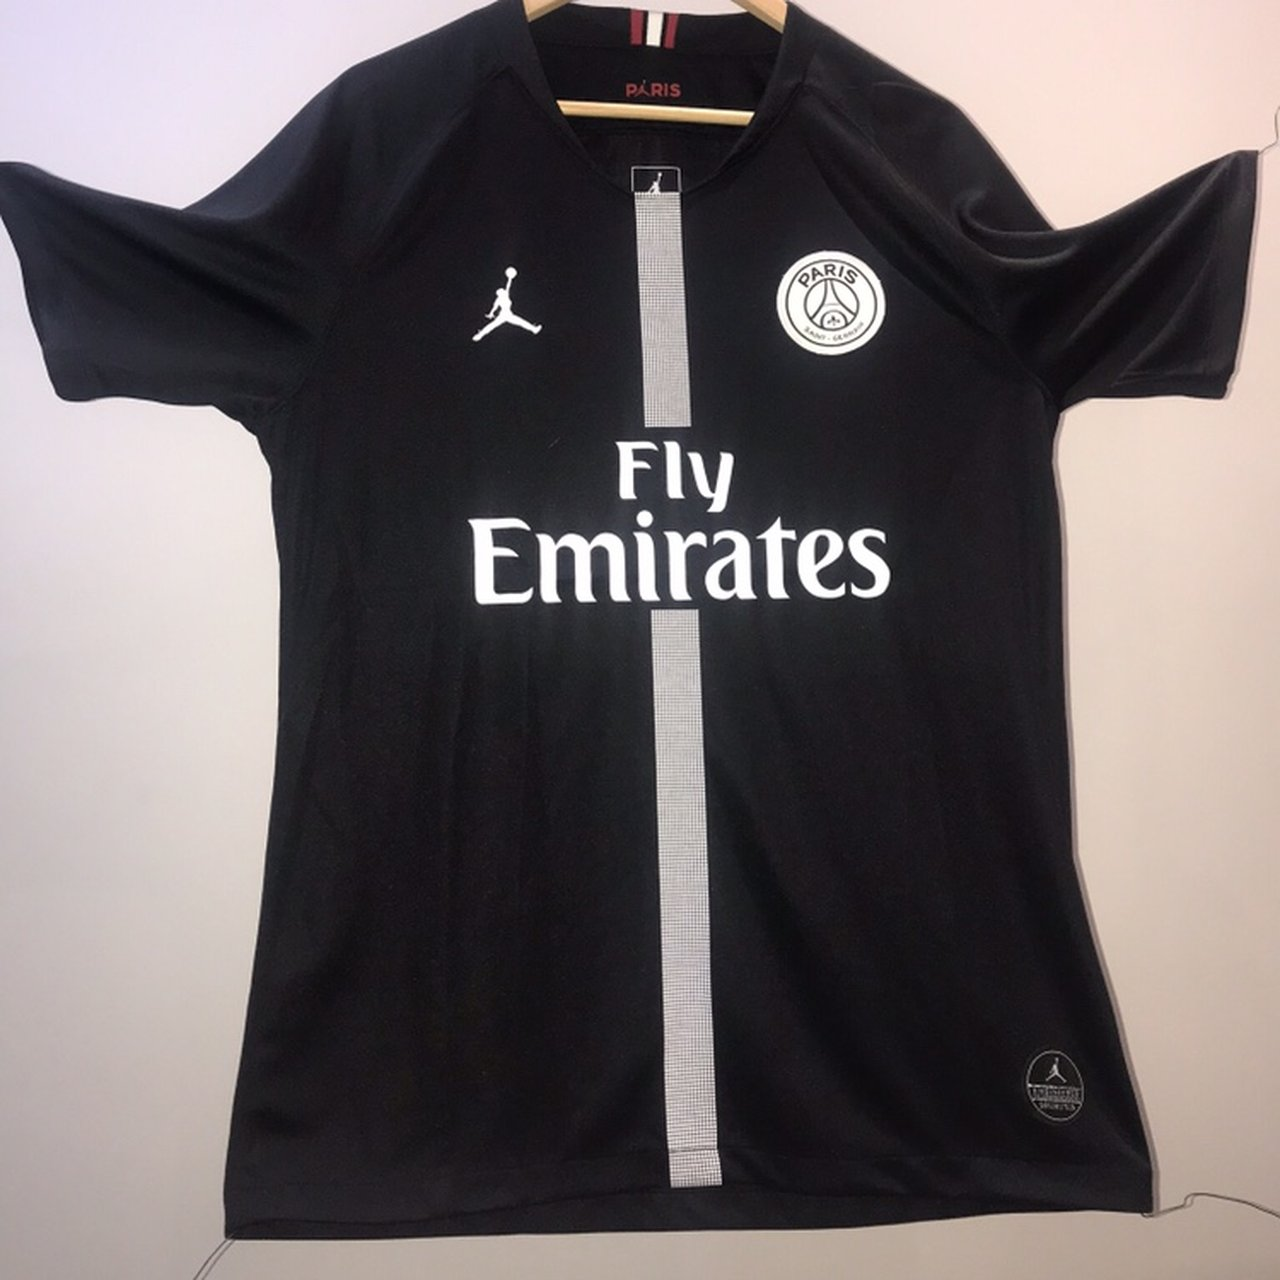 Psg Jordan 2018 2019 Home Football Shirt Psg Jordan Depop